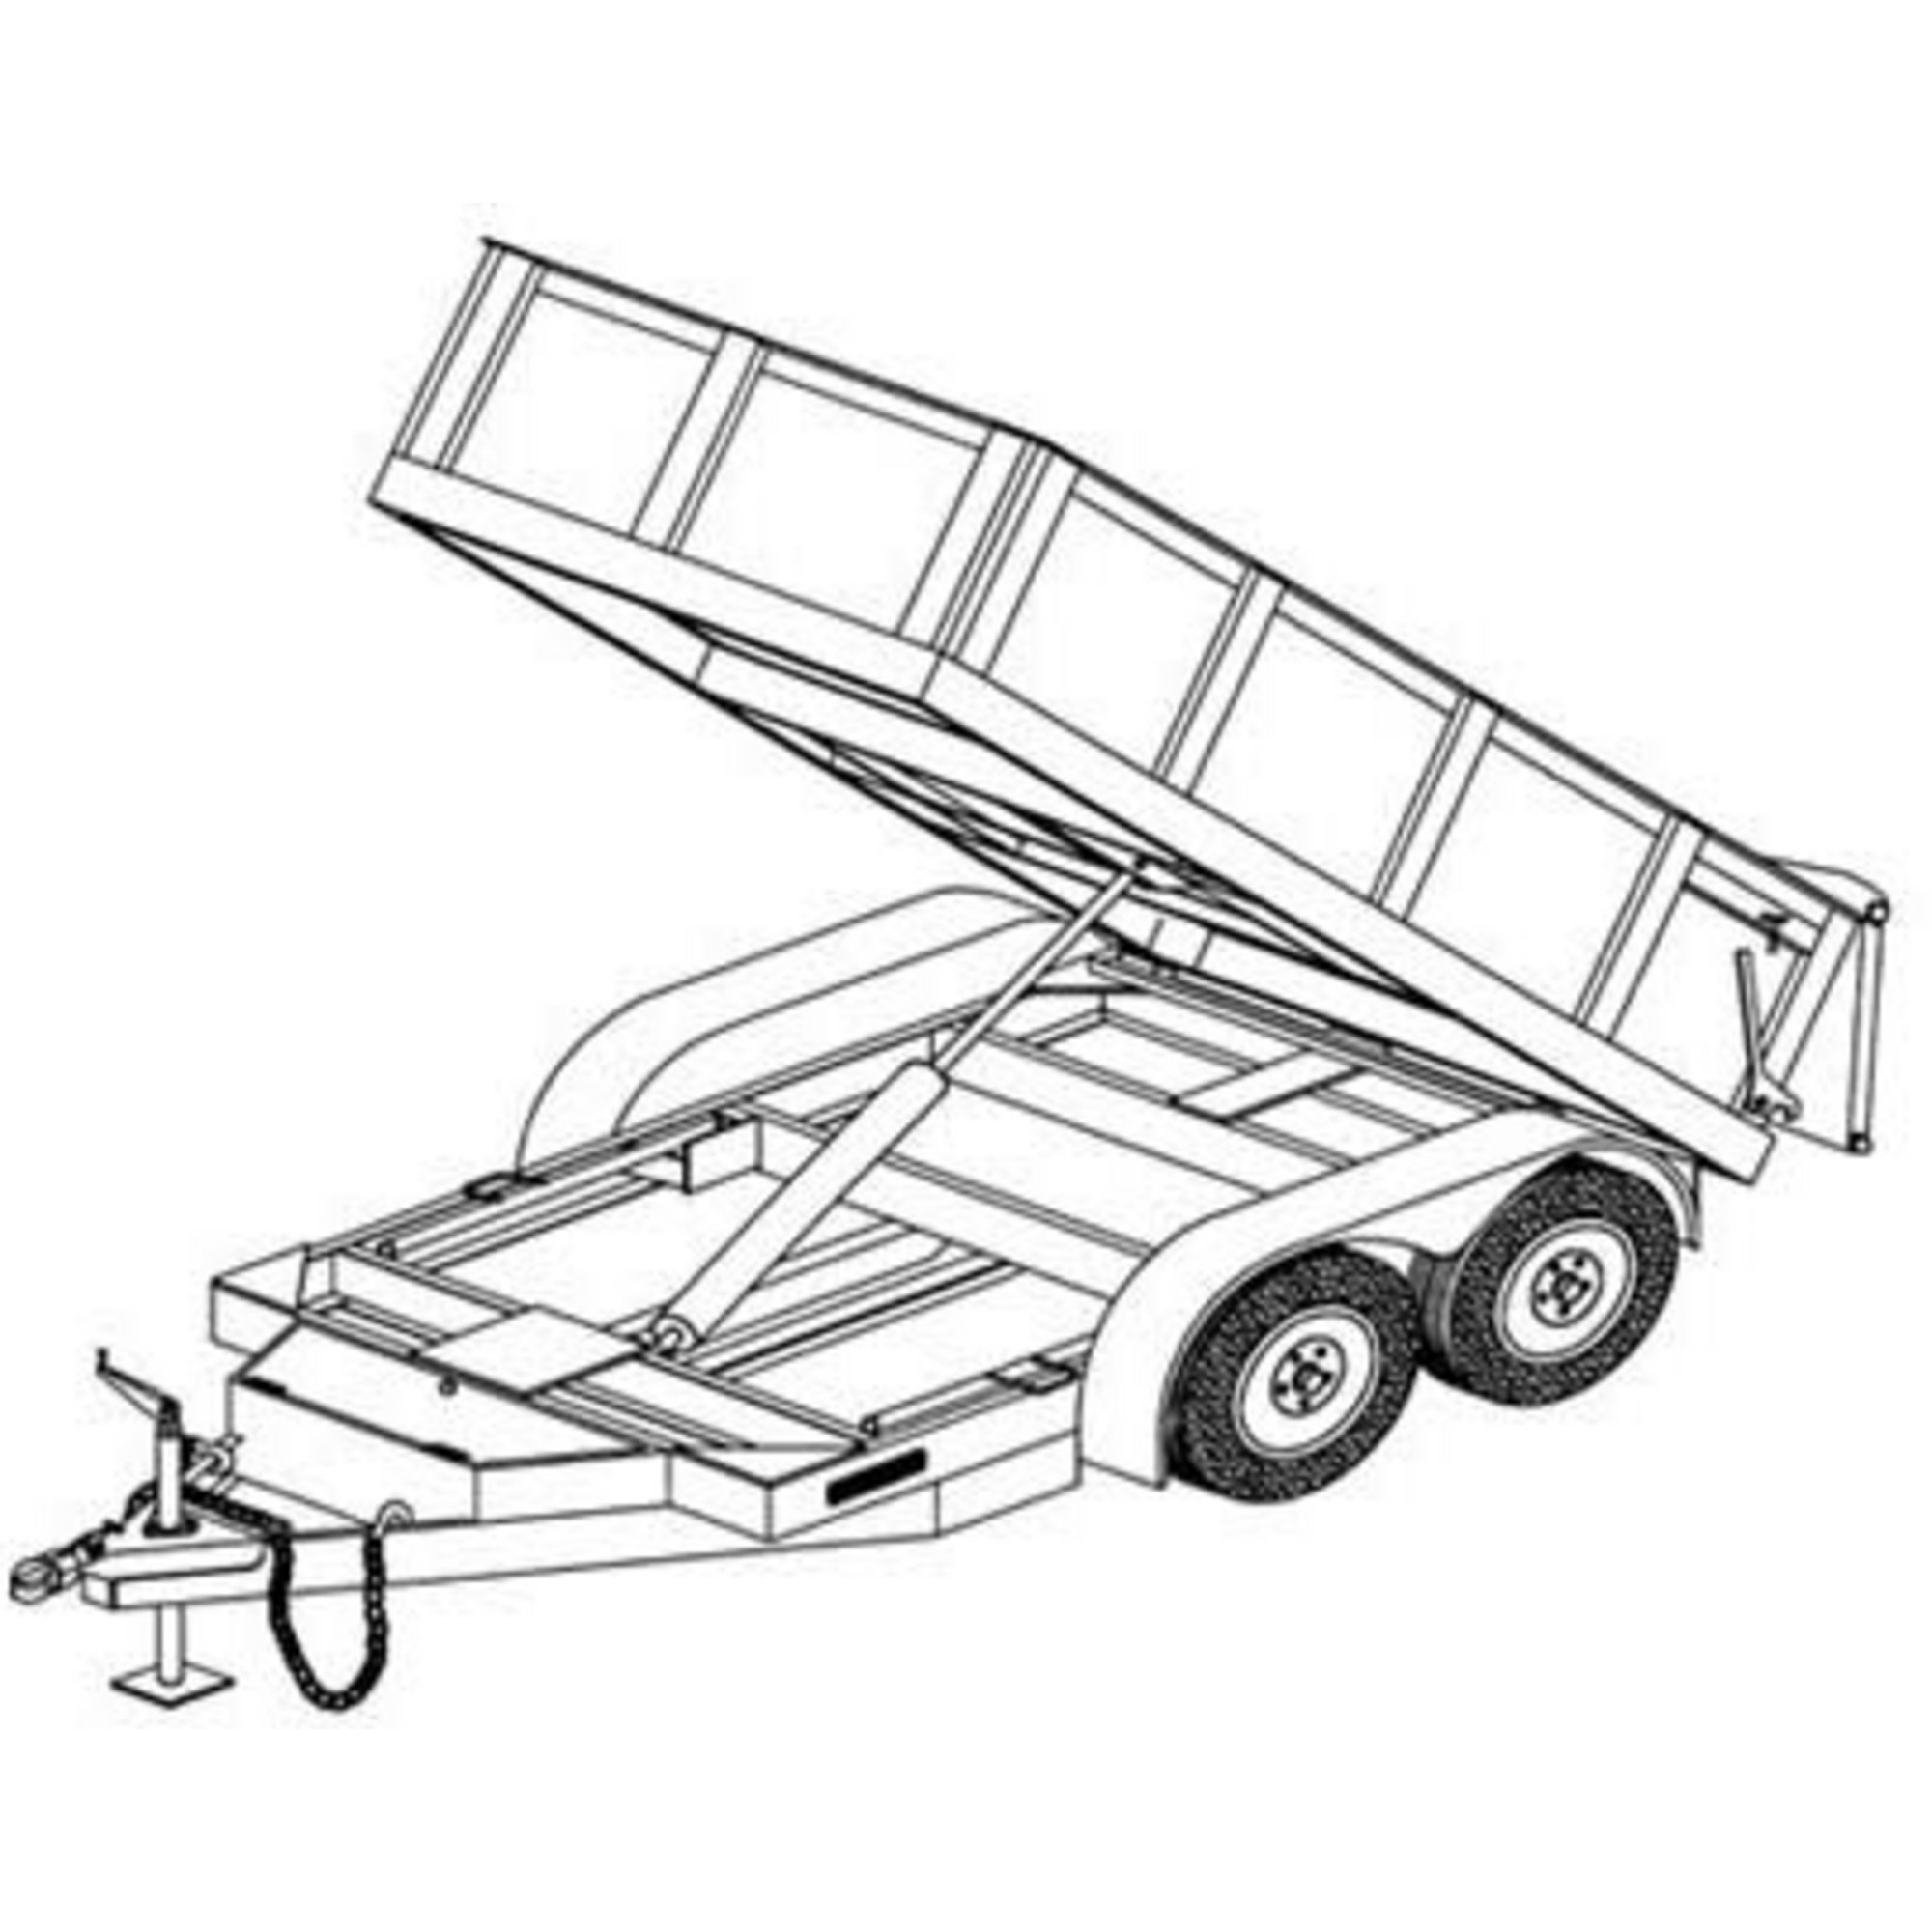 Carry On Trailer Wiring Diagram / Carry On Trailer Wiring